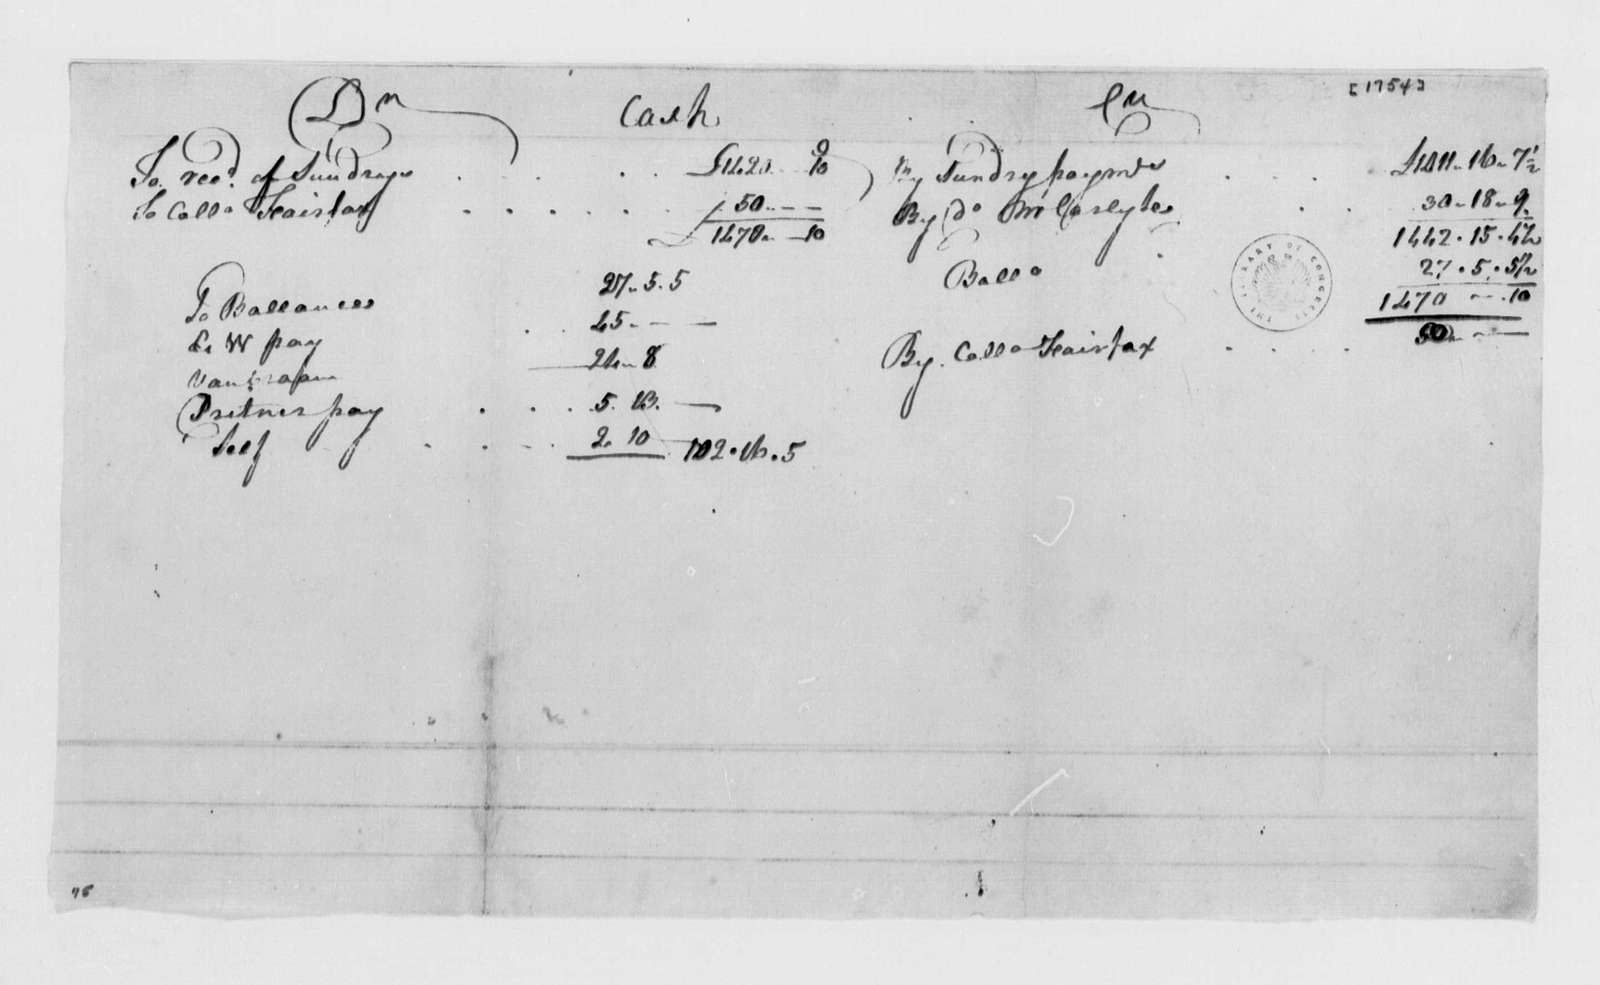 George Washington Papers, Series 4, General Correspondence: Virginia Regiment, 1754, Accounts for George Washington's Cash in Hand